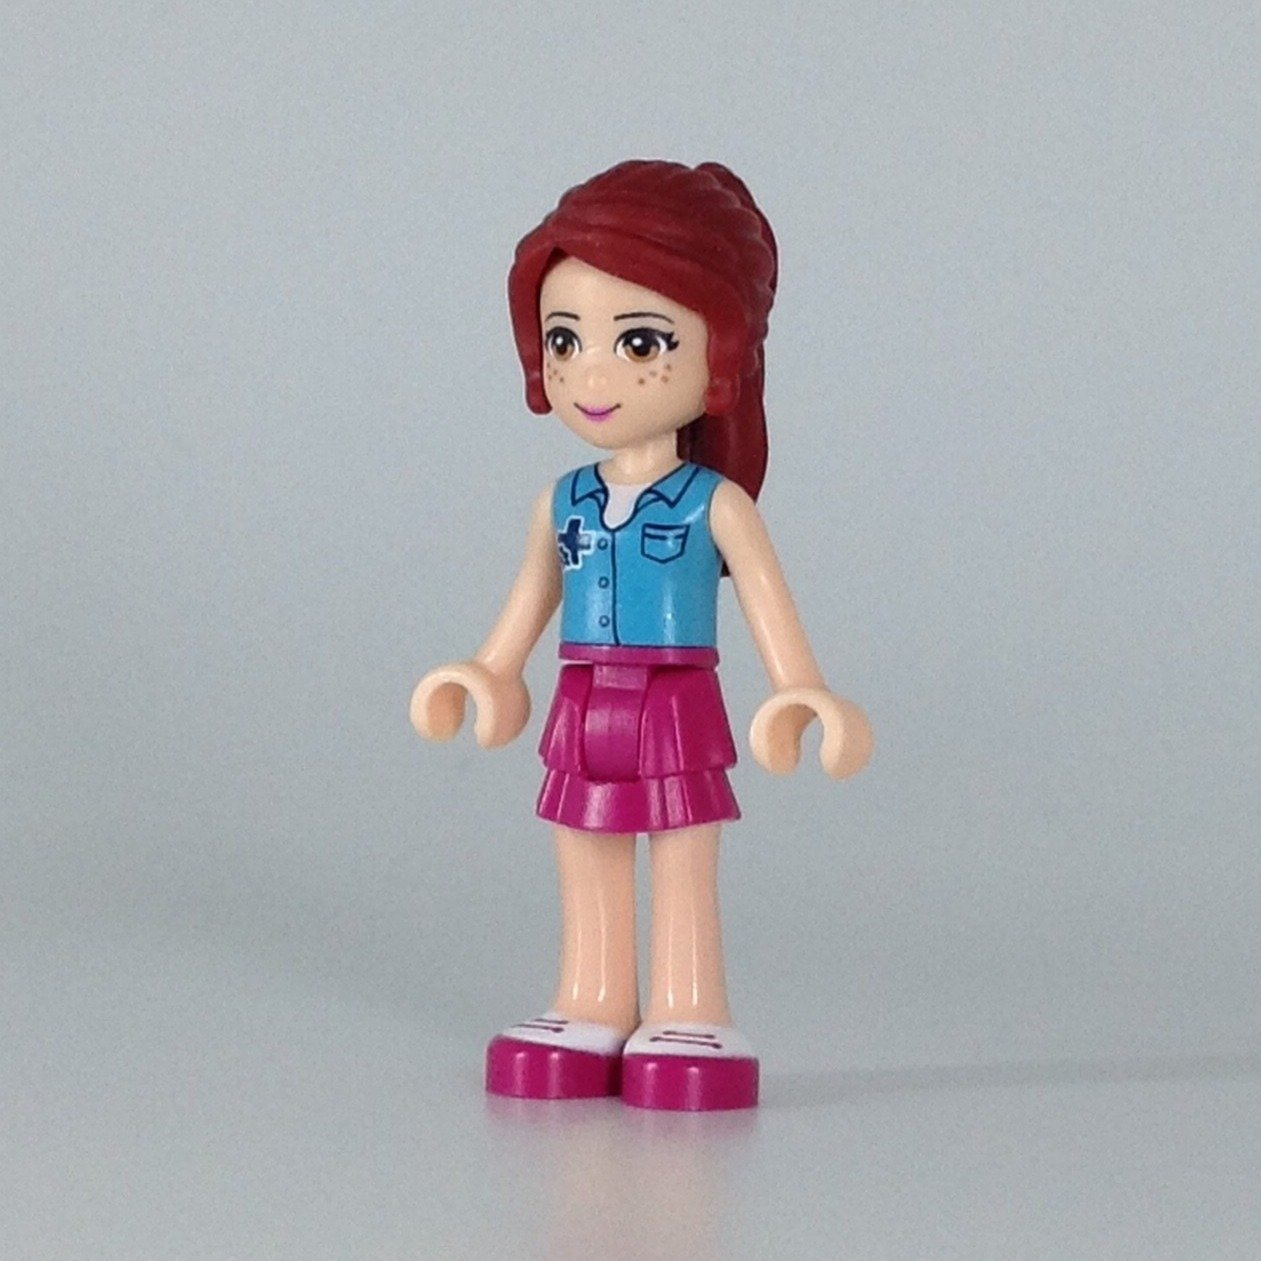 Lego 1 Head For Female Girl Minifigure Magenta Pink Glasses Spectacles